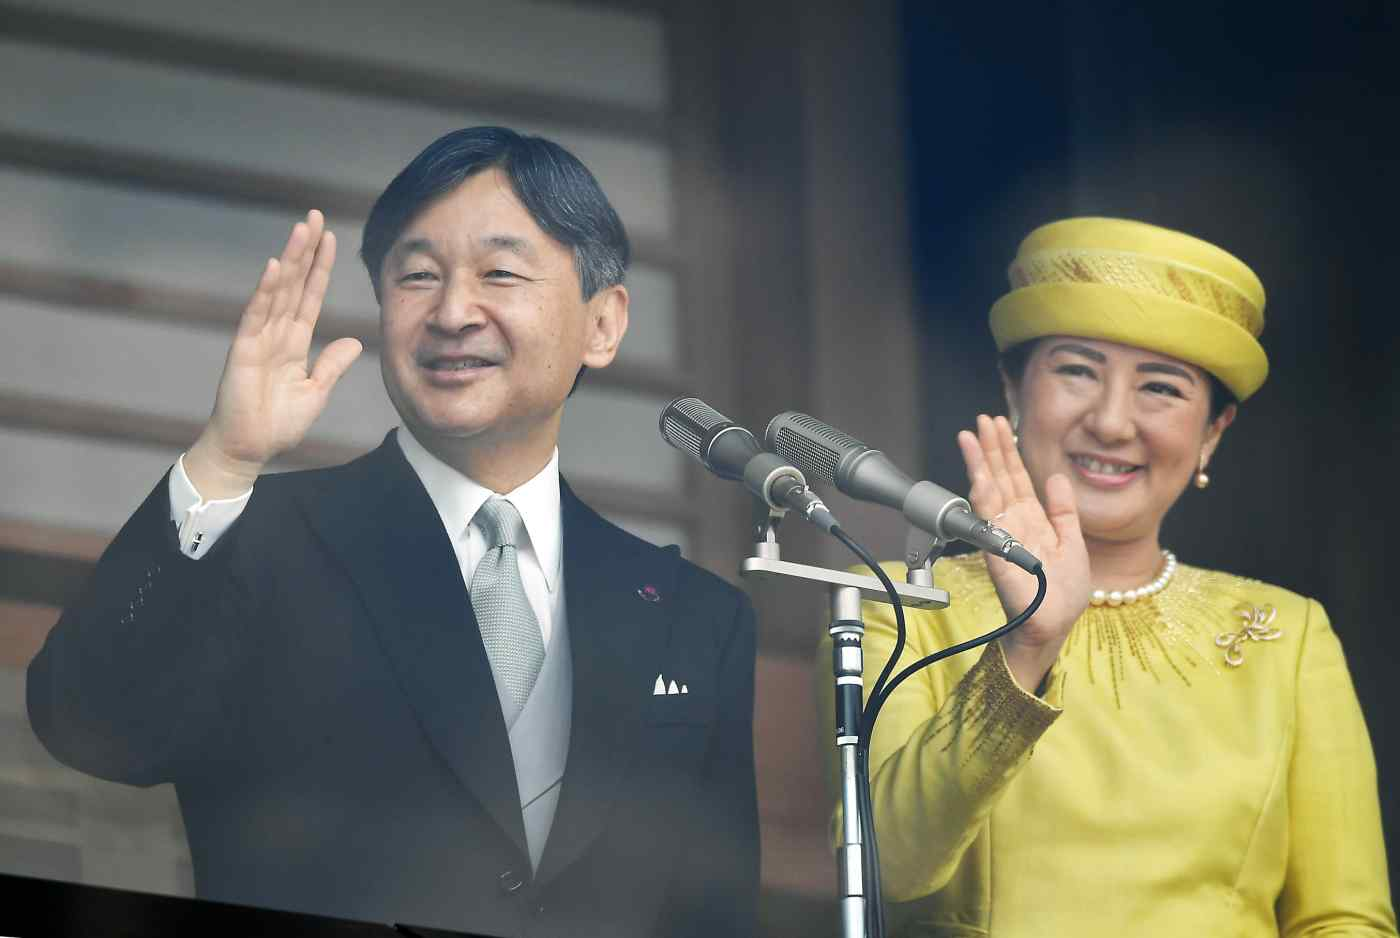 Emperor Naruhito and Empress Masako wave to the thousands of people who gathered at the Imperial Palace on May 4. (Photo by Toshiki Sasazu)